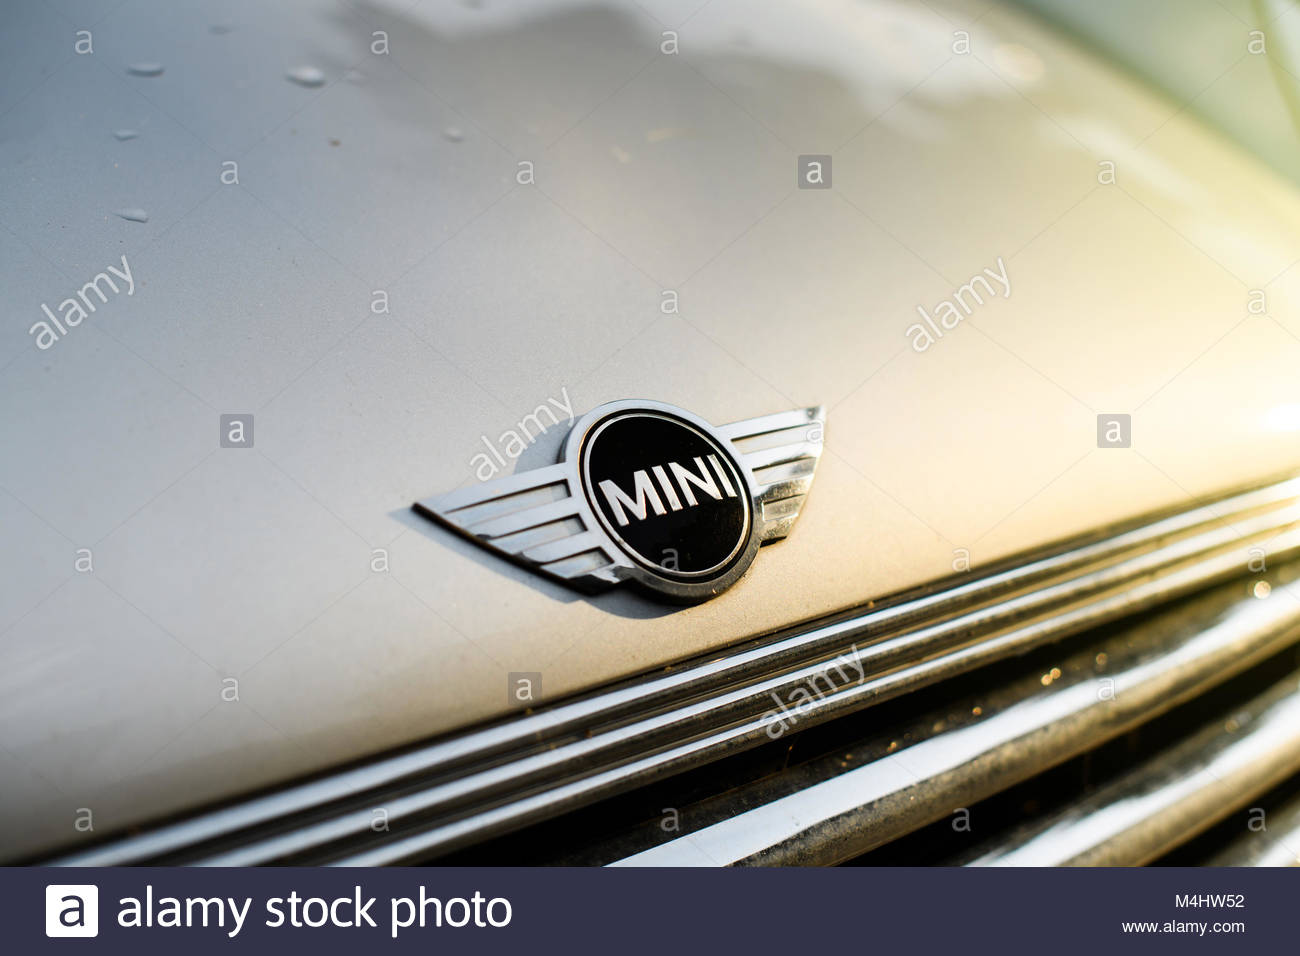 Mini car parked in city with mini logotype - Stock Image